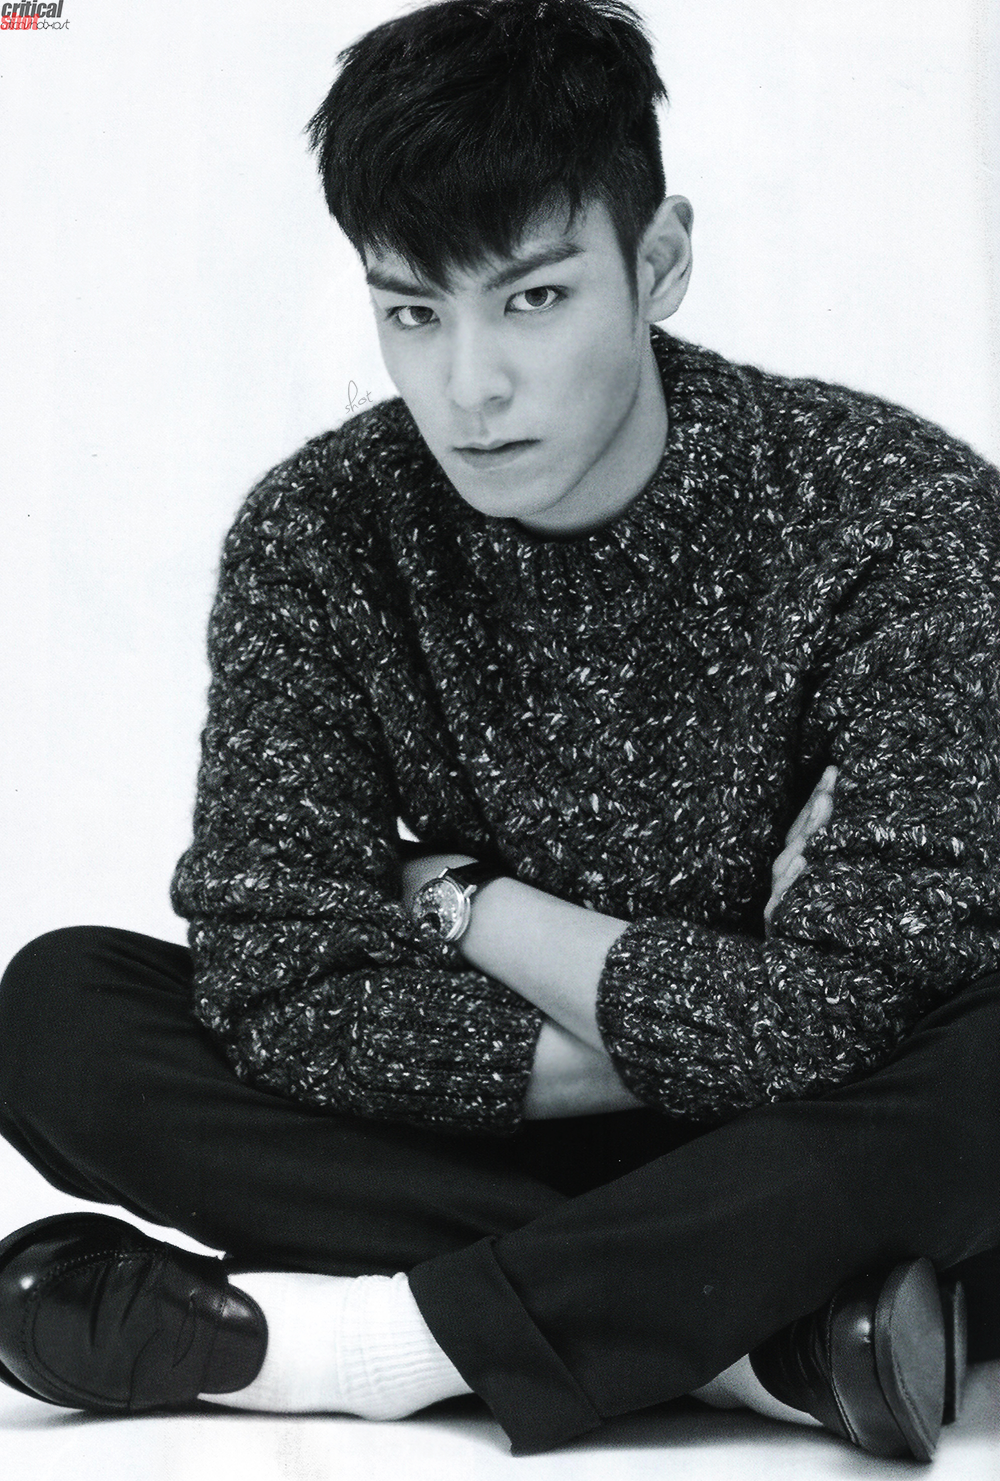 Big Bang - GQ Korea - Aug2015 - criticalshot819 - 13.jpg